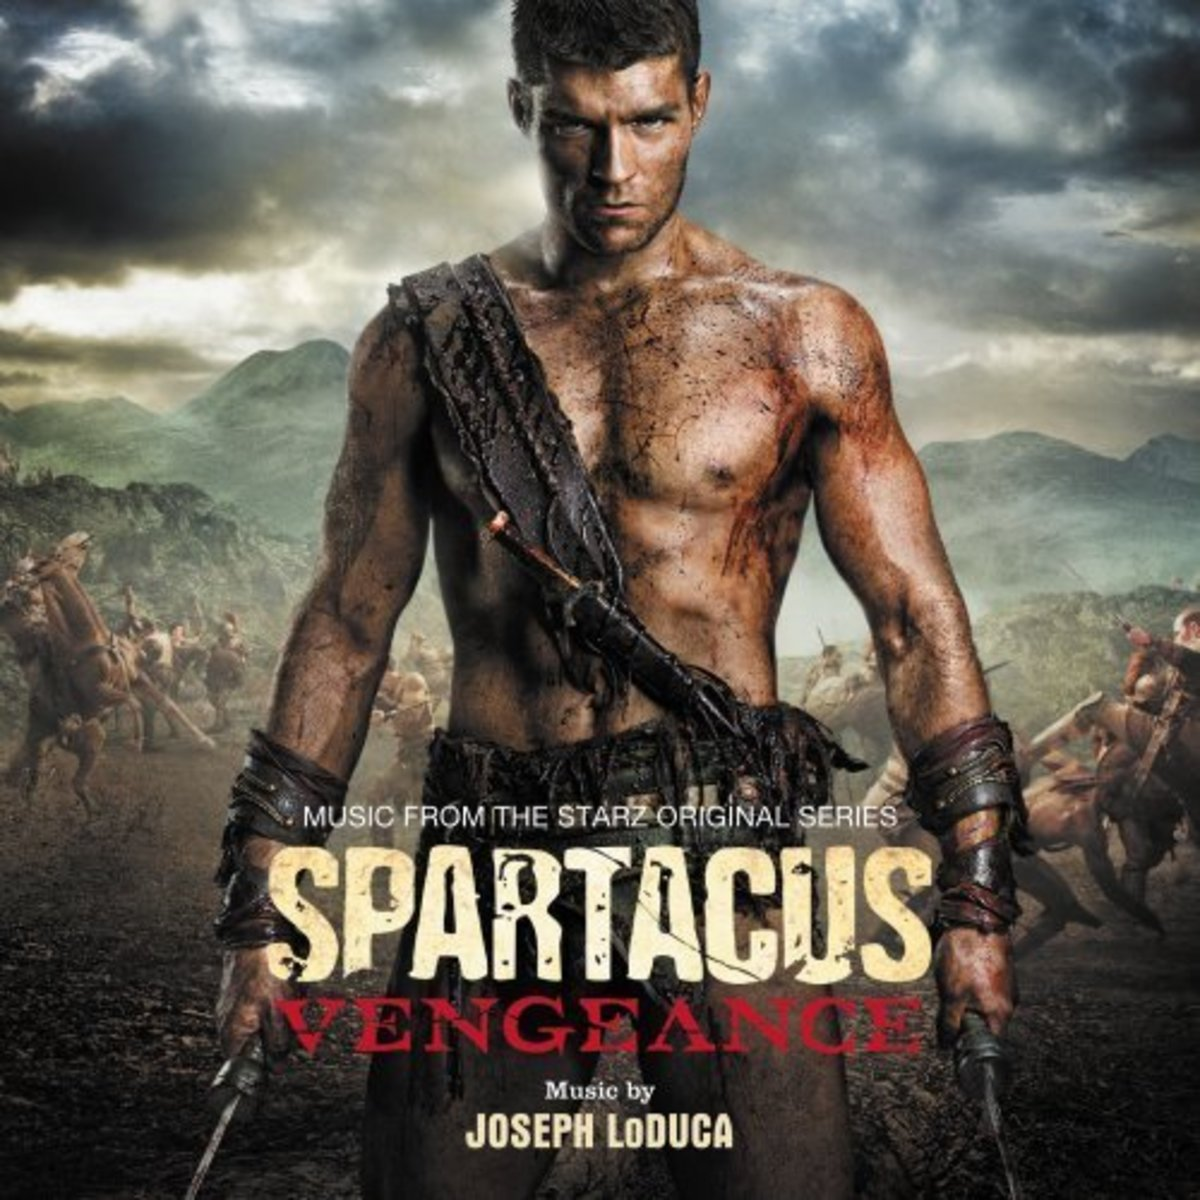 Spartacus | 20 TV Shows Like Game of Thrones You Should Watch